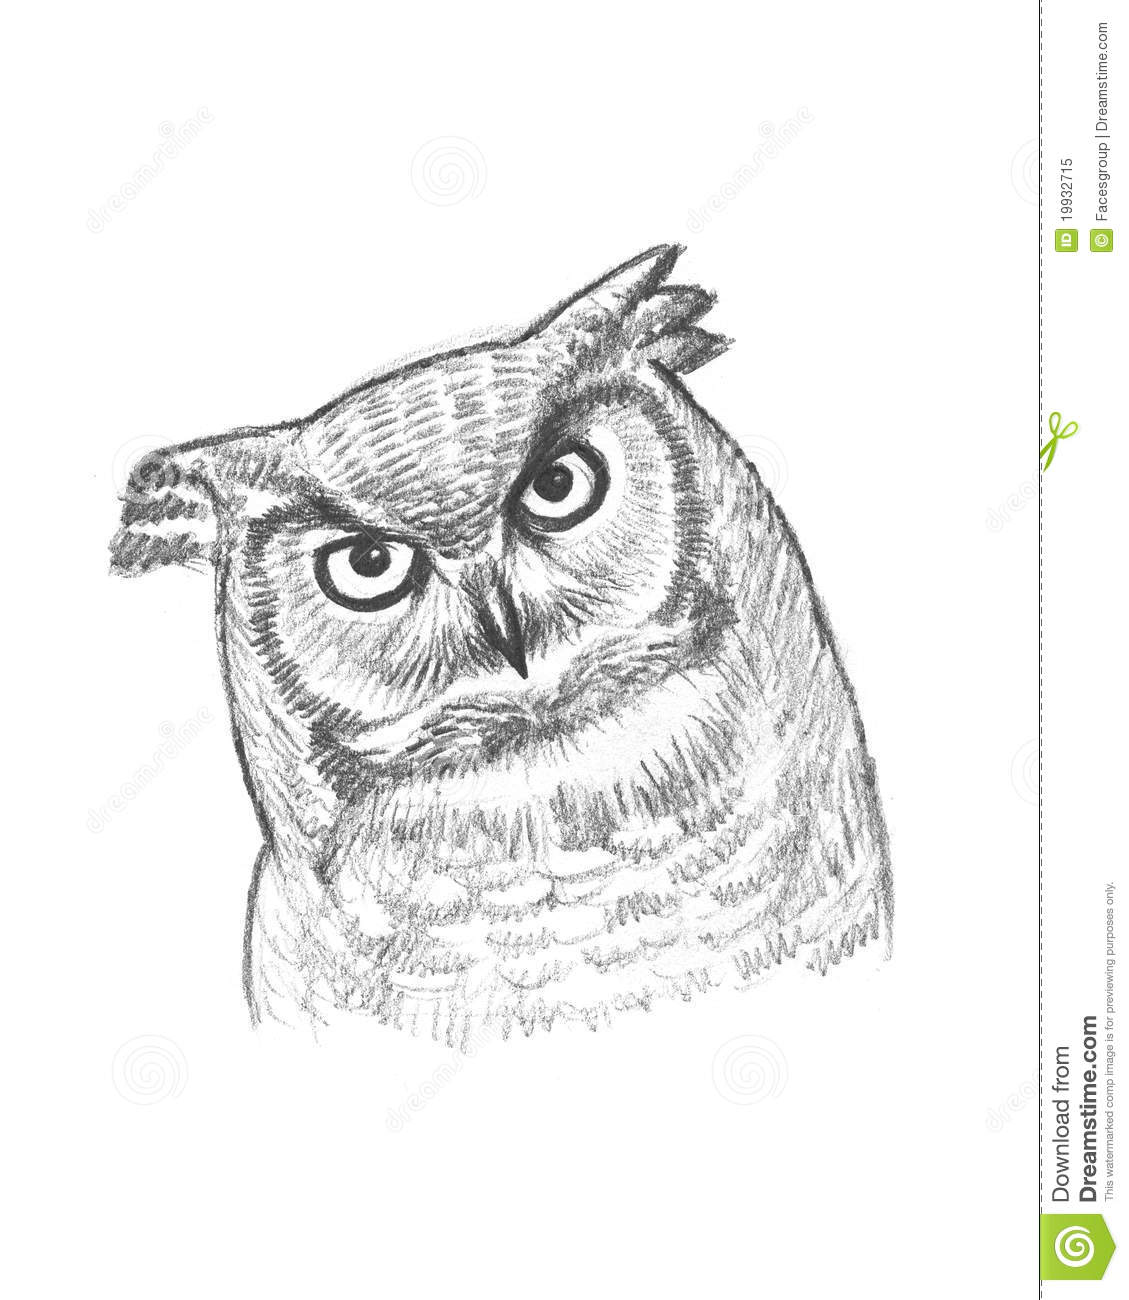 pencil sketch owl stock illustrations 501 pencil sketch owl stock Flying Owl Line Drawing pencil sketch owl stock illustrations 501 pencil sketch owl stock illustrations vectors clipart dreamstime